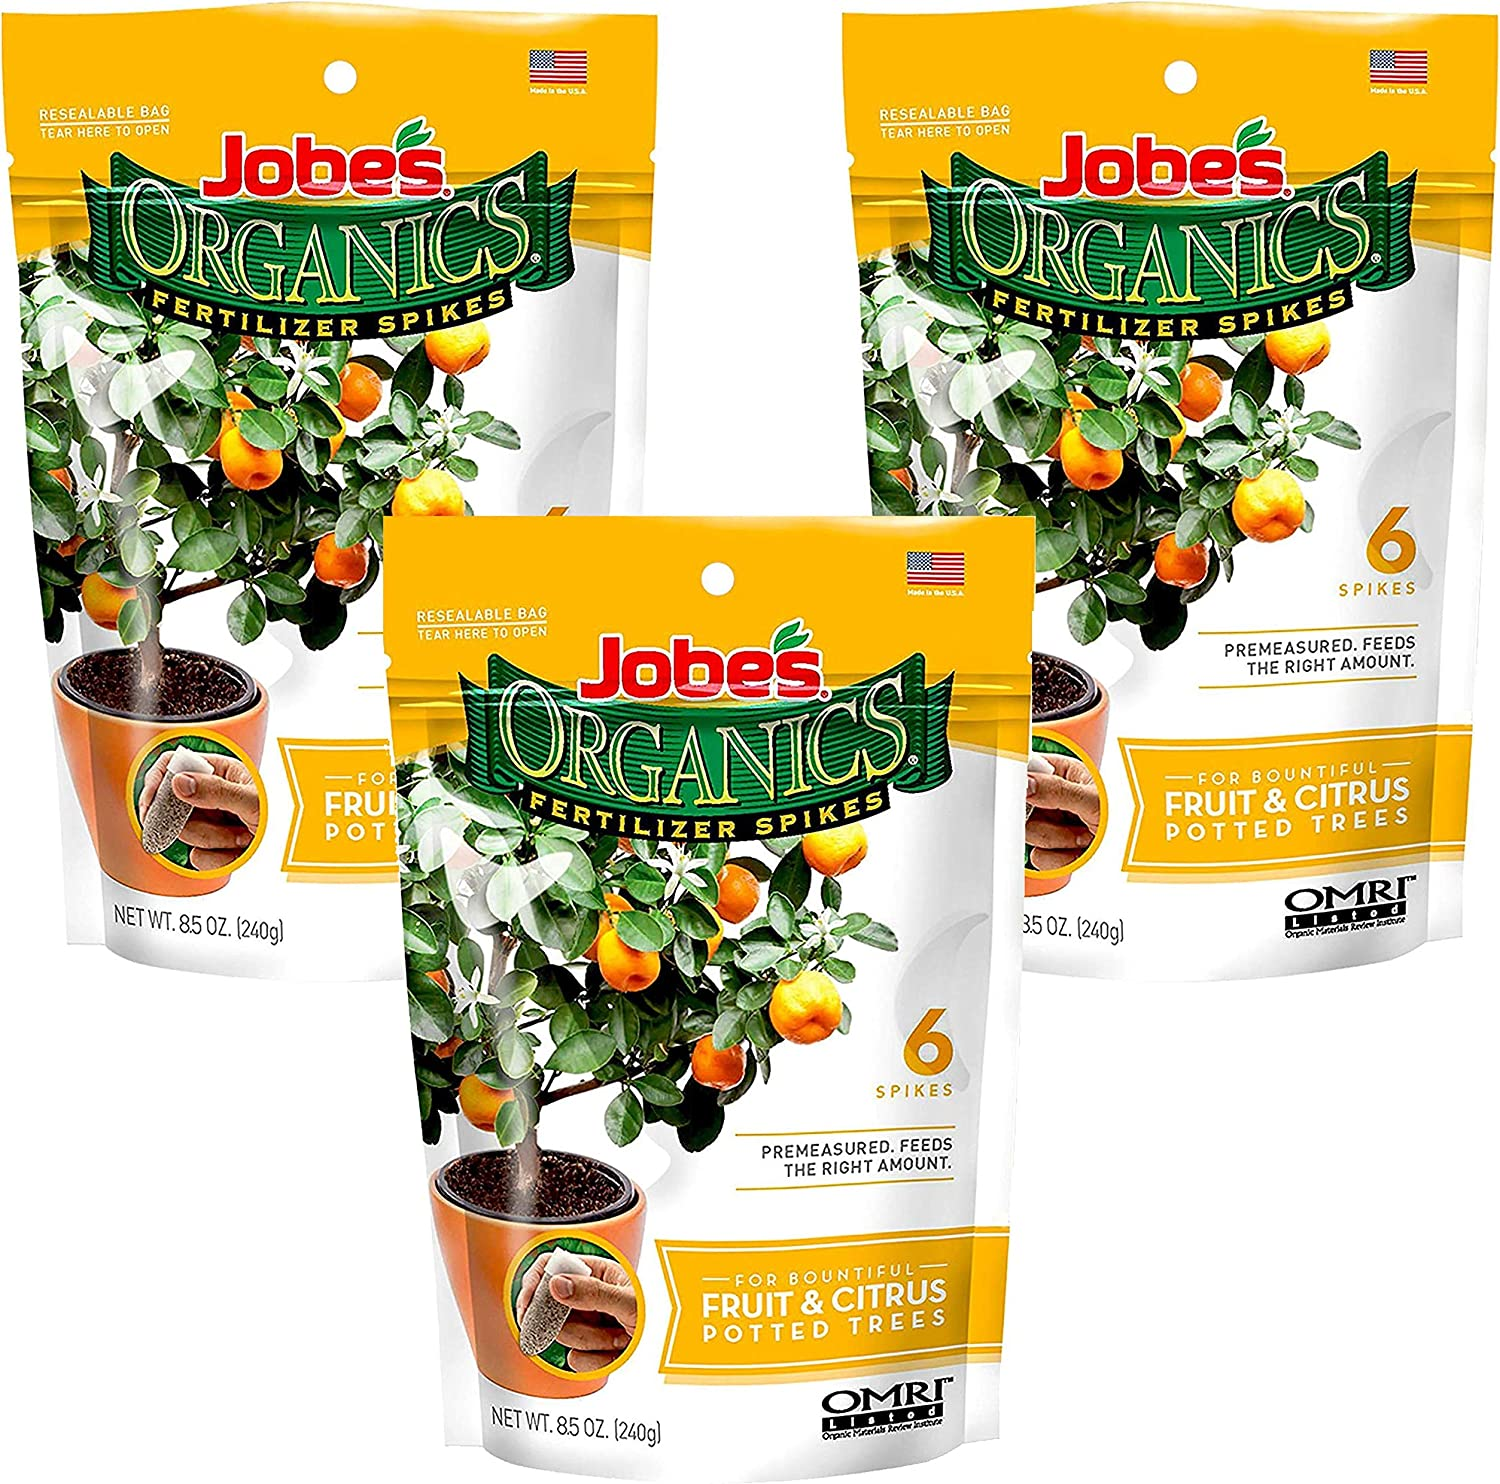 Jobe's Organics Fruit & Citrus Tree Fertilizer Spikes, 3-5-5 Time Release Fertilizer for All Container or Indoor Fruit Trees, 6 Spikes per Package (3)